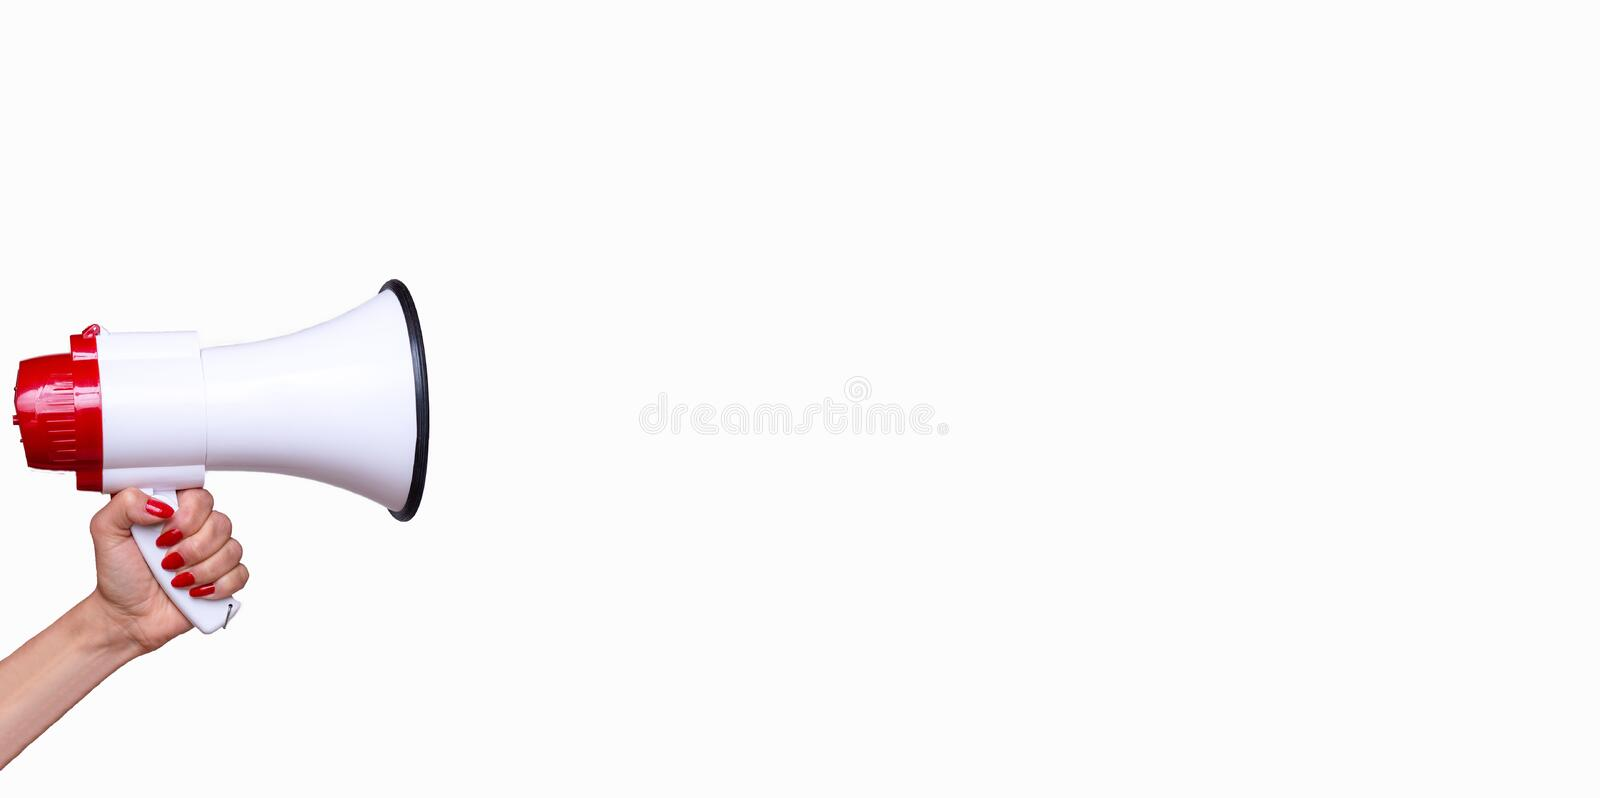 Woman holding a megaphone. Woman holding a bullhorn or megaphone isolated on a white background with copy space in a conceptual image of vocal communication royalty free stock image